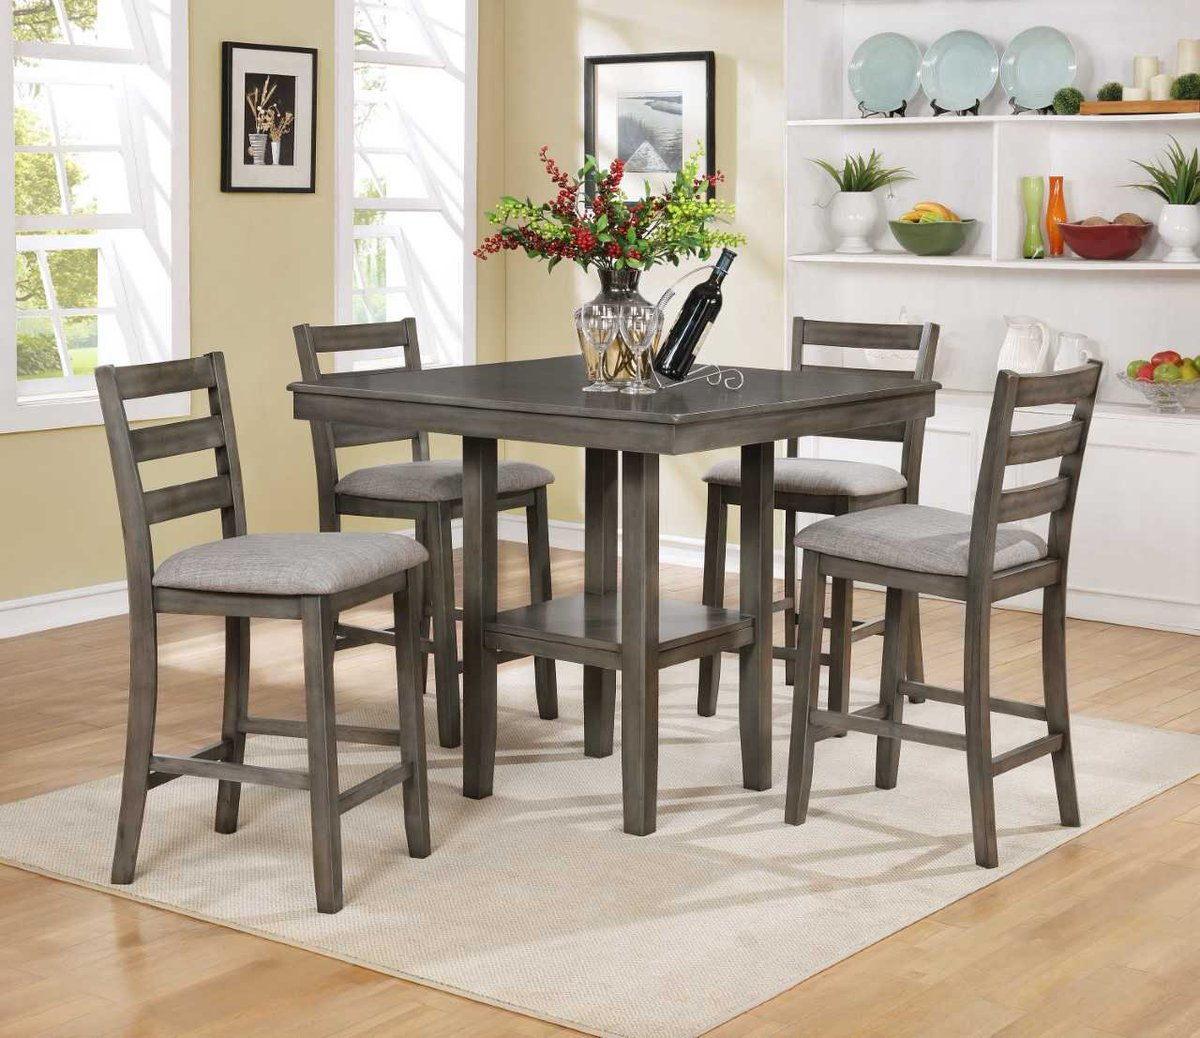 Kimbrell S Furniture On Twitter Dine In Style Add A Traditional